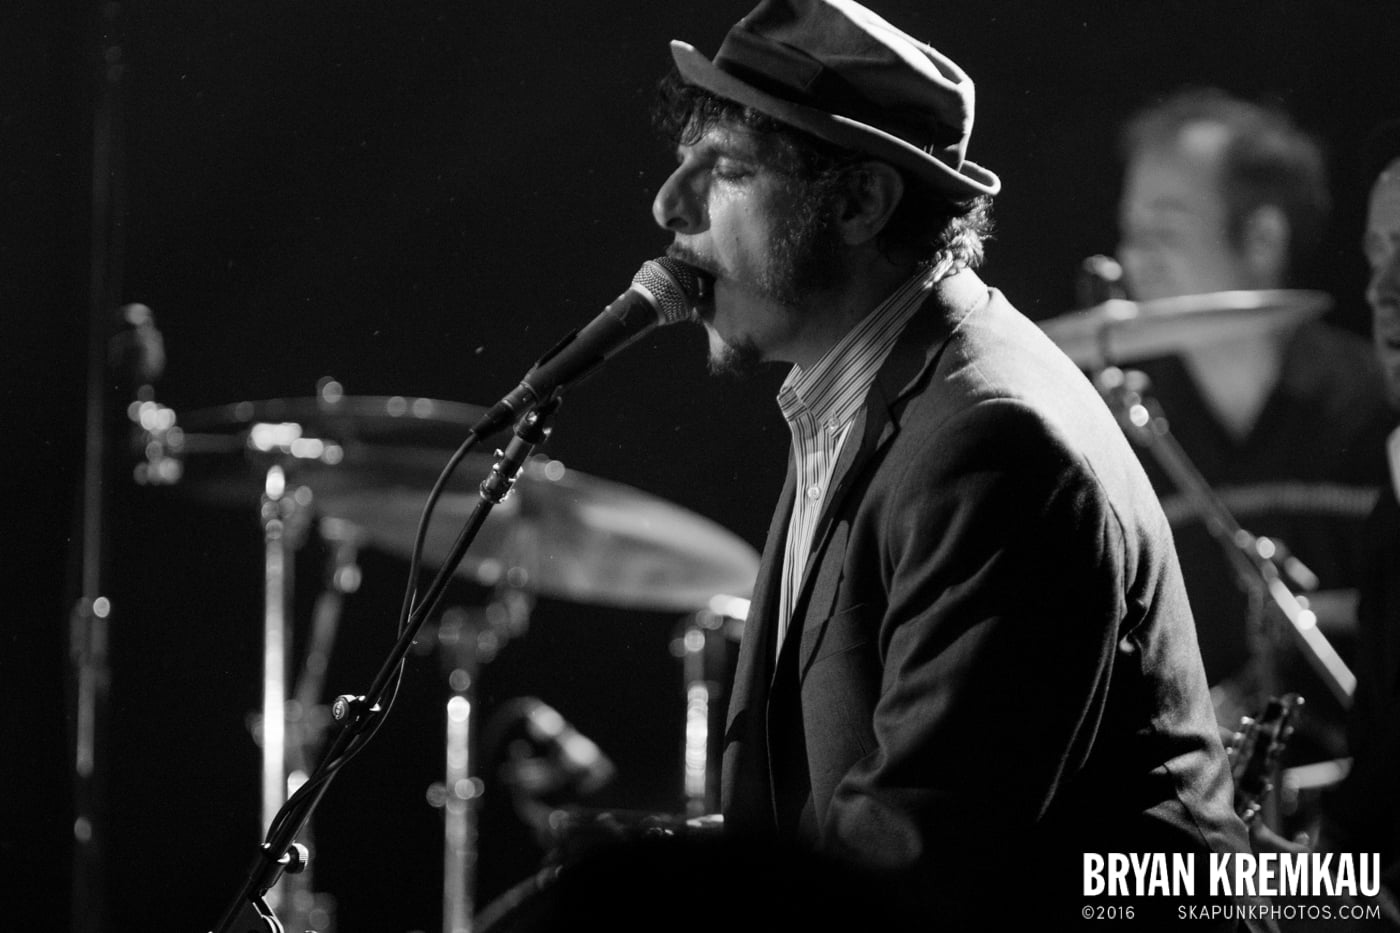 The Slackers @ Apple Stomp: Day 2, Irving Plaza, NYC - June 1st 2013 - Bryan Kremkau (2)